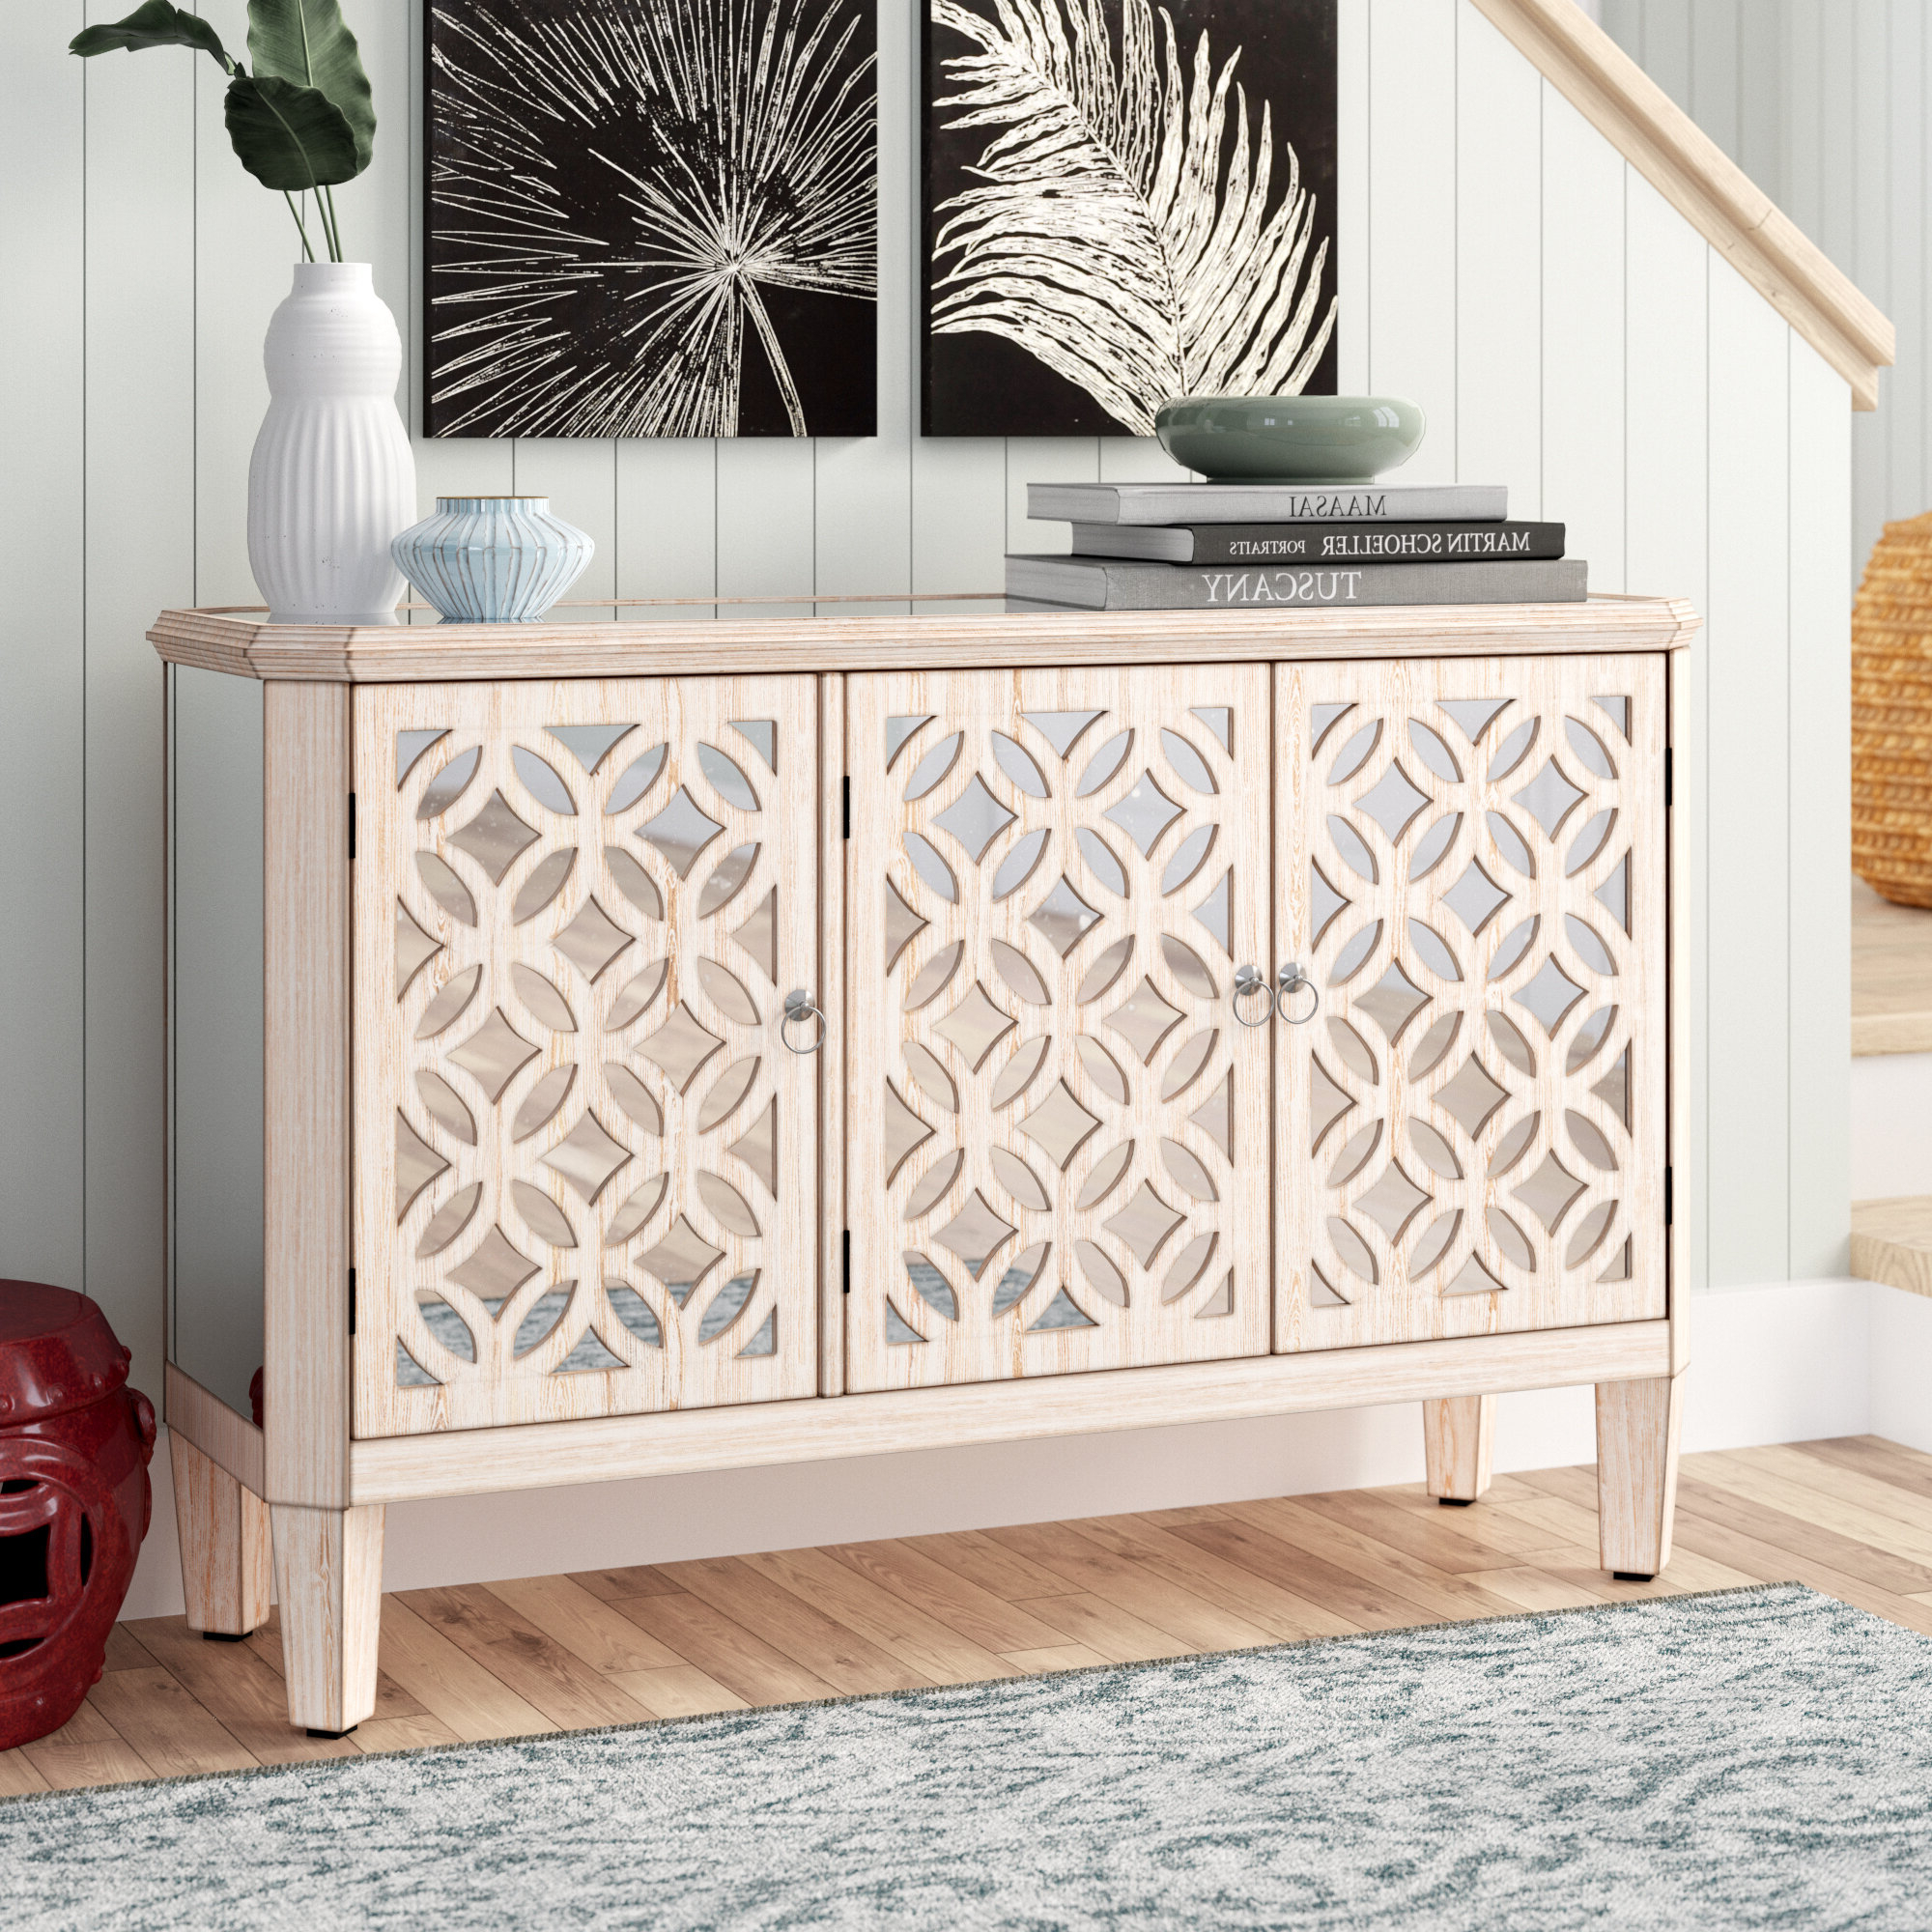 Hand Painted Credenza | Wayfair Intended For Bremner Credenzas (View 9 of 20)